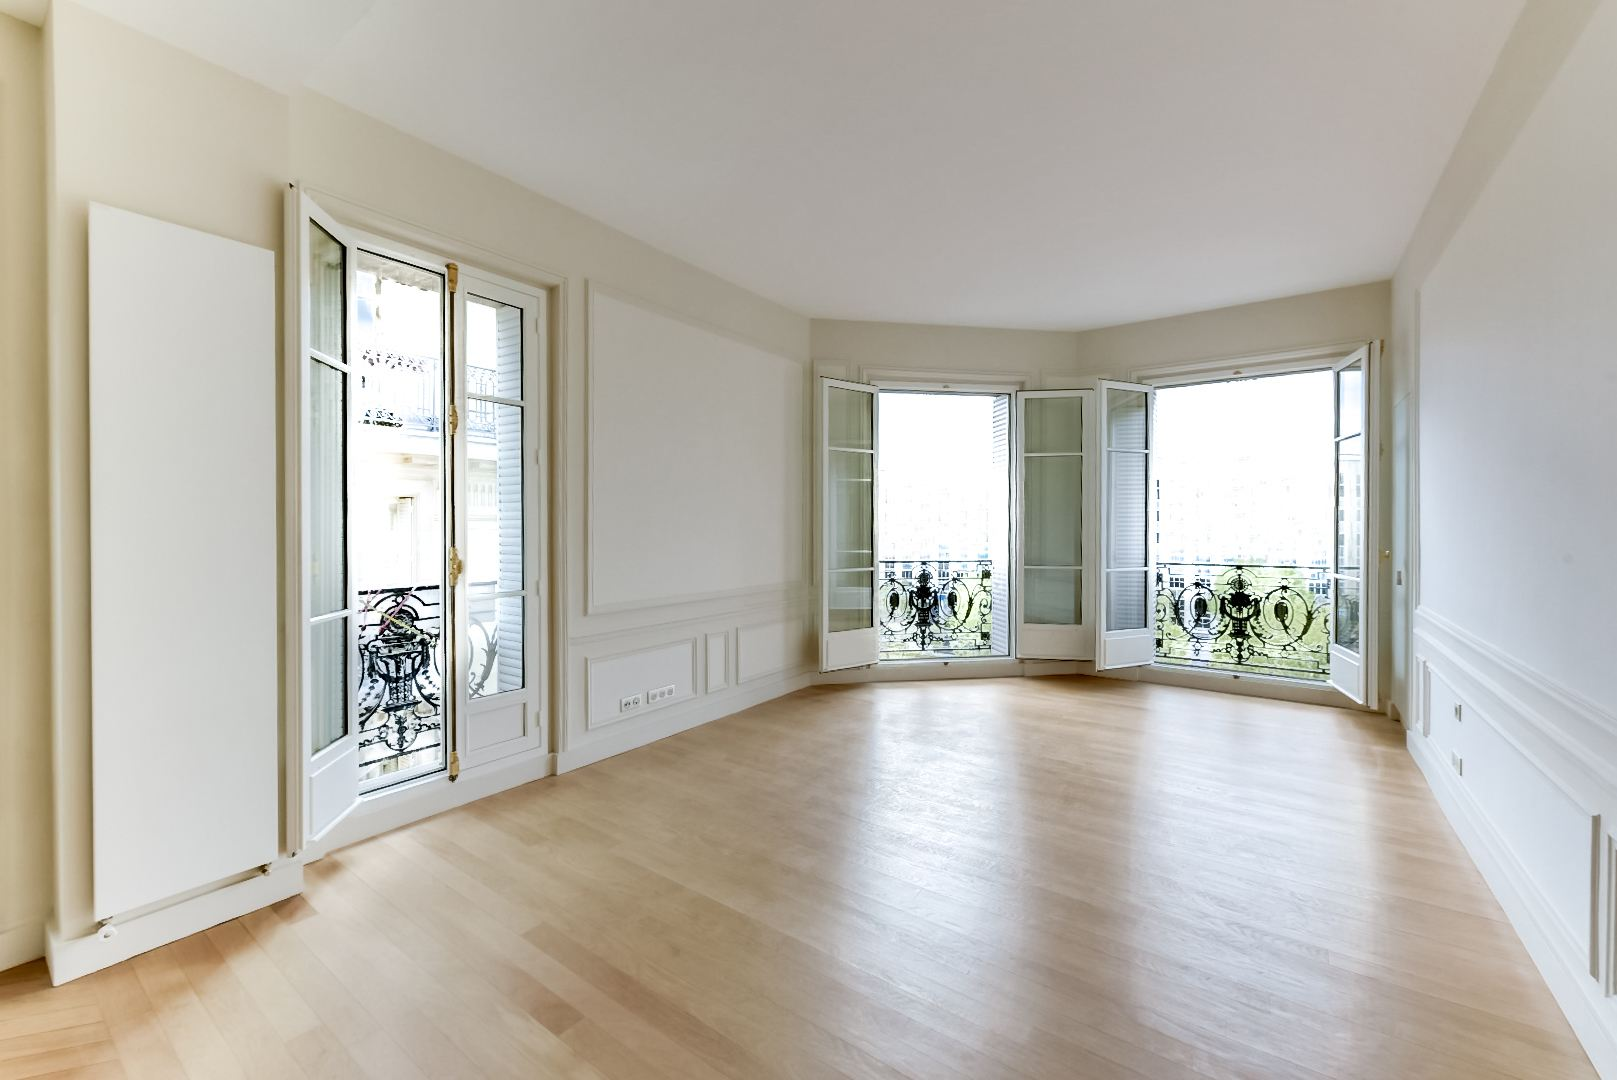 sales property at For sale refurbished apartment in Paris 16 - Flandrin